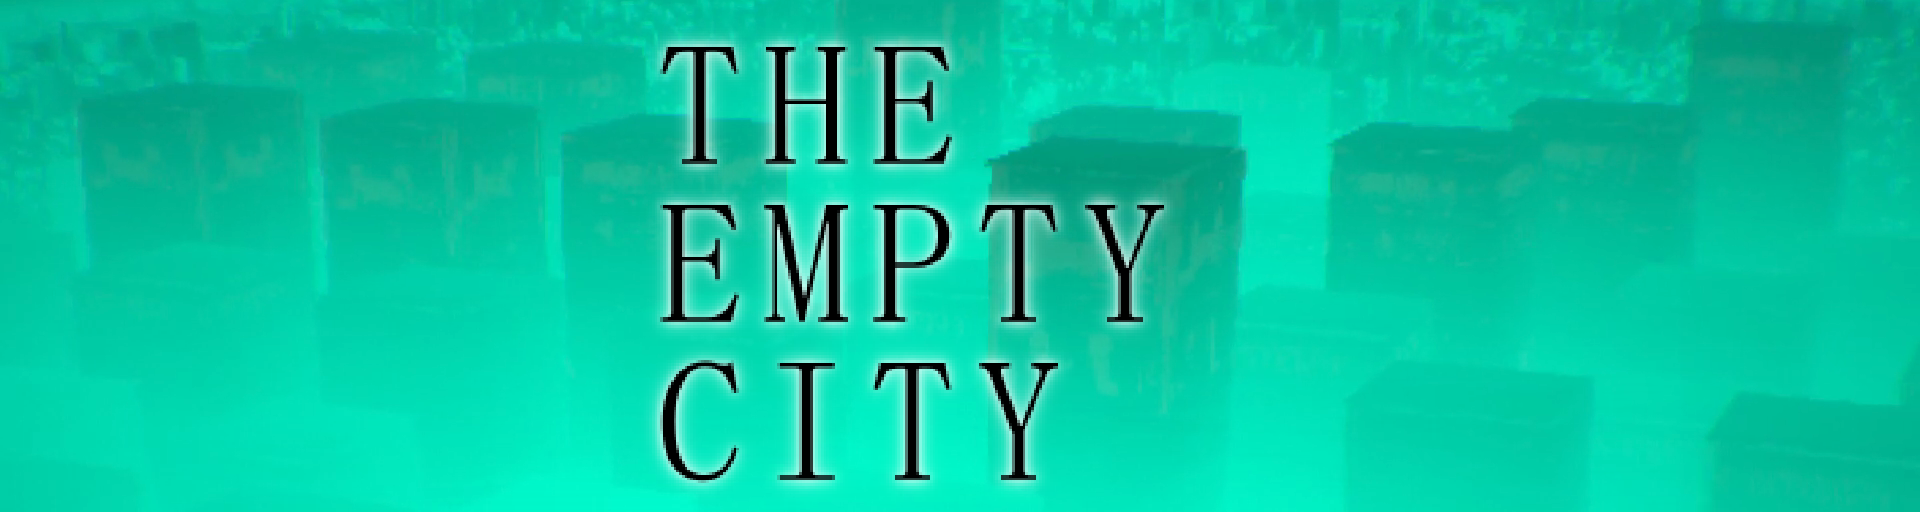 The Empty City